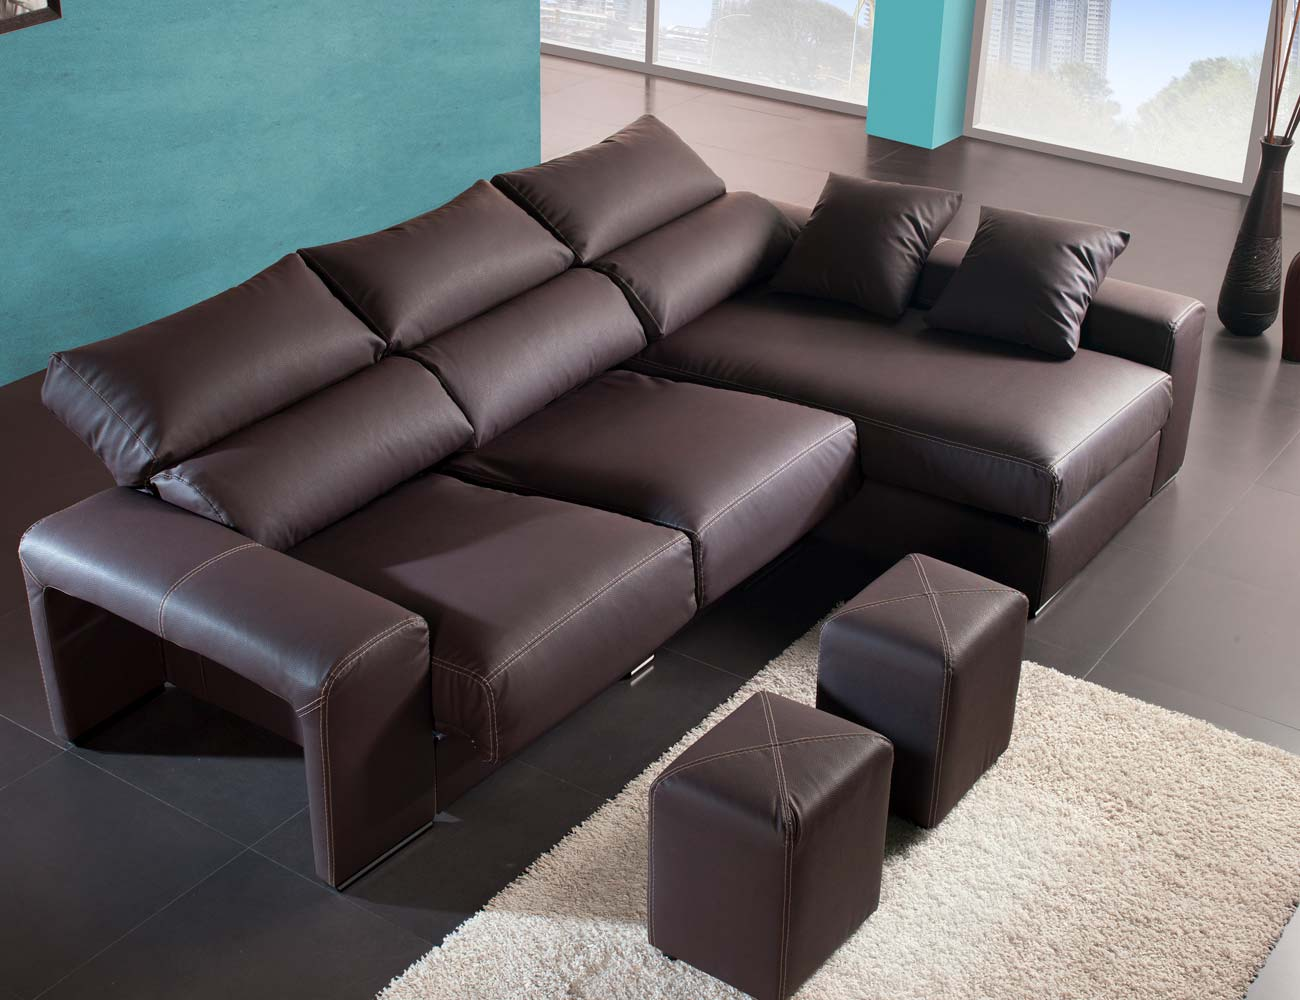 Sofa chaiselongue moderno polipiel chocolate poufs taburetes2